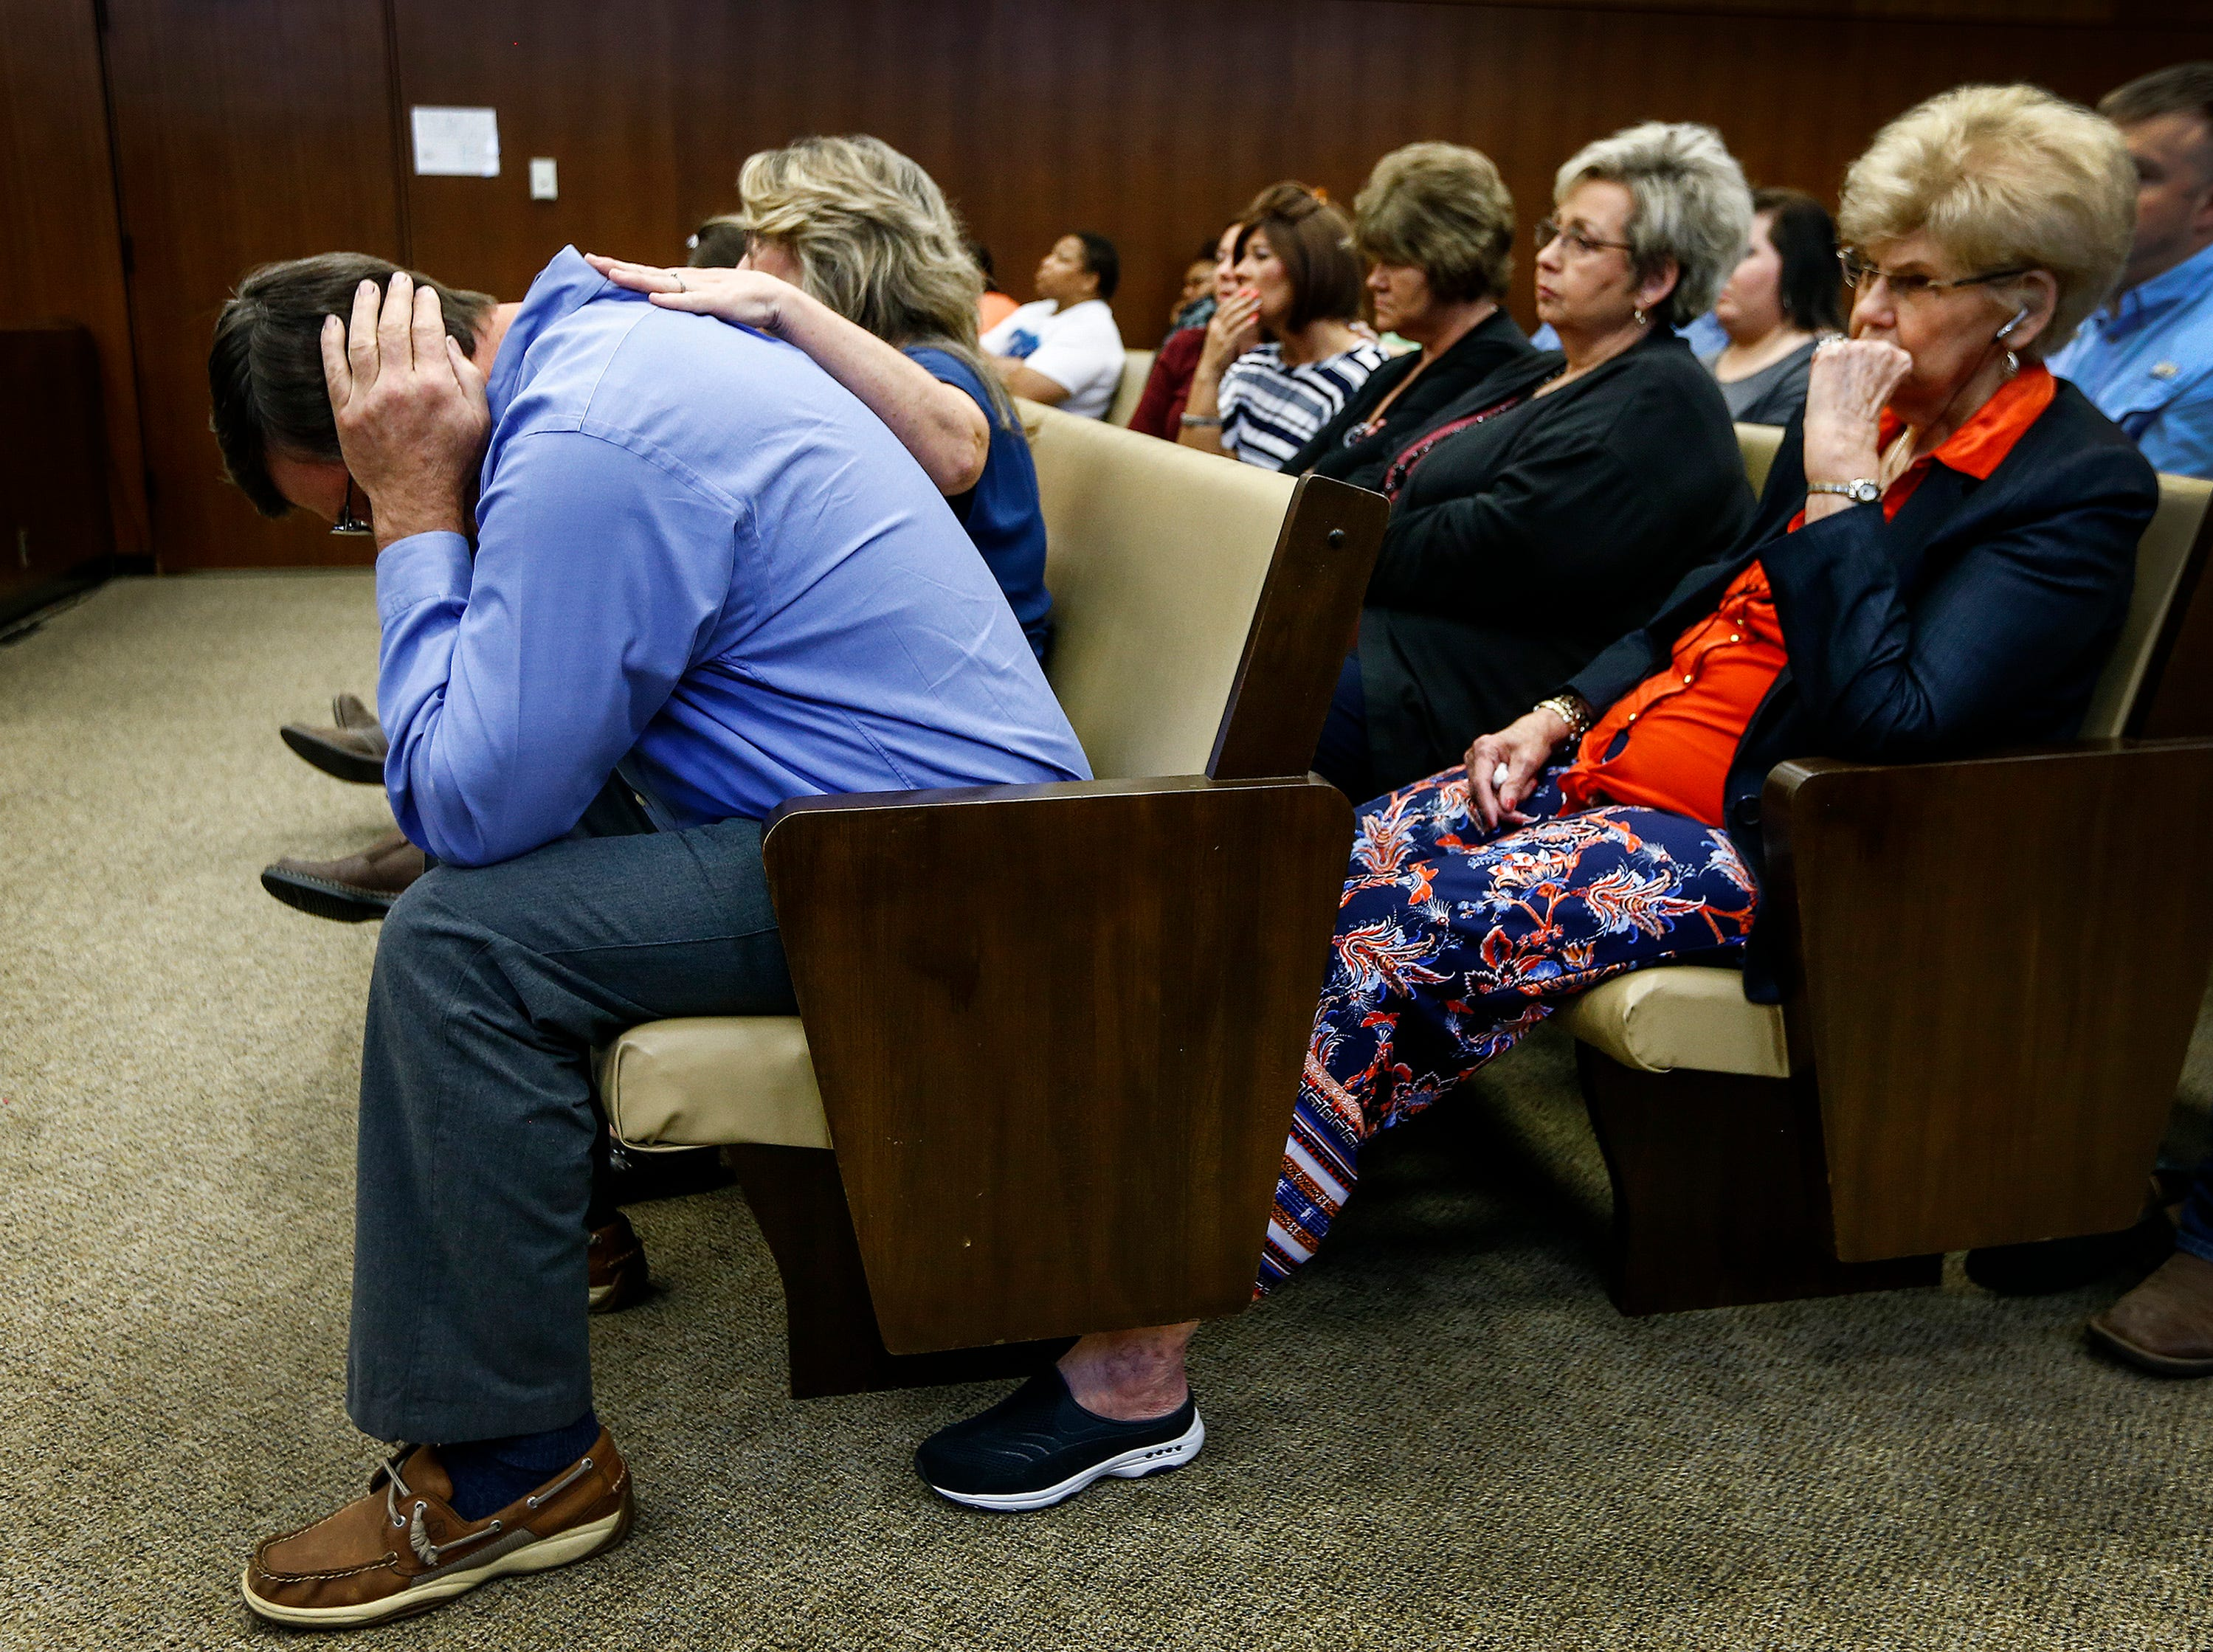 Ben Chambers, father of Jessica Chambers covers his ears during testimony on the second day of the retrial of Quinton Tellis in Batesville, Mississippi on Tuesday. Tellis is charged with burning 19-year-old Chambers to death almost three years ago on Dec. 6, 2014. Tellis has pleaded not guilty to the murder.